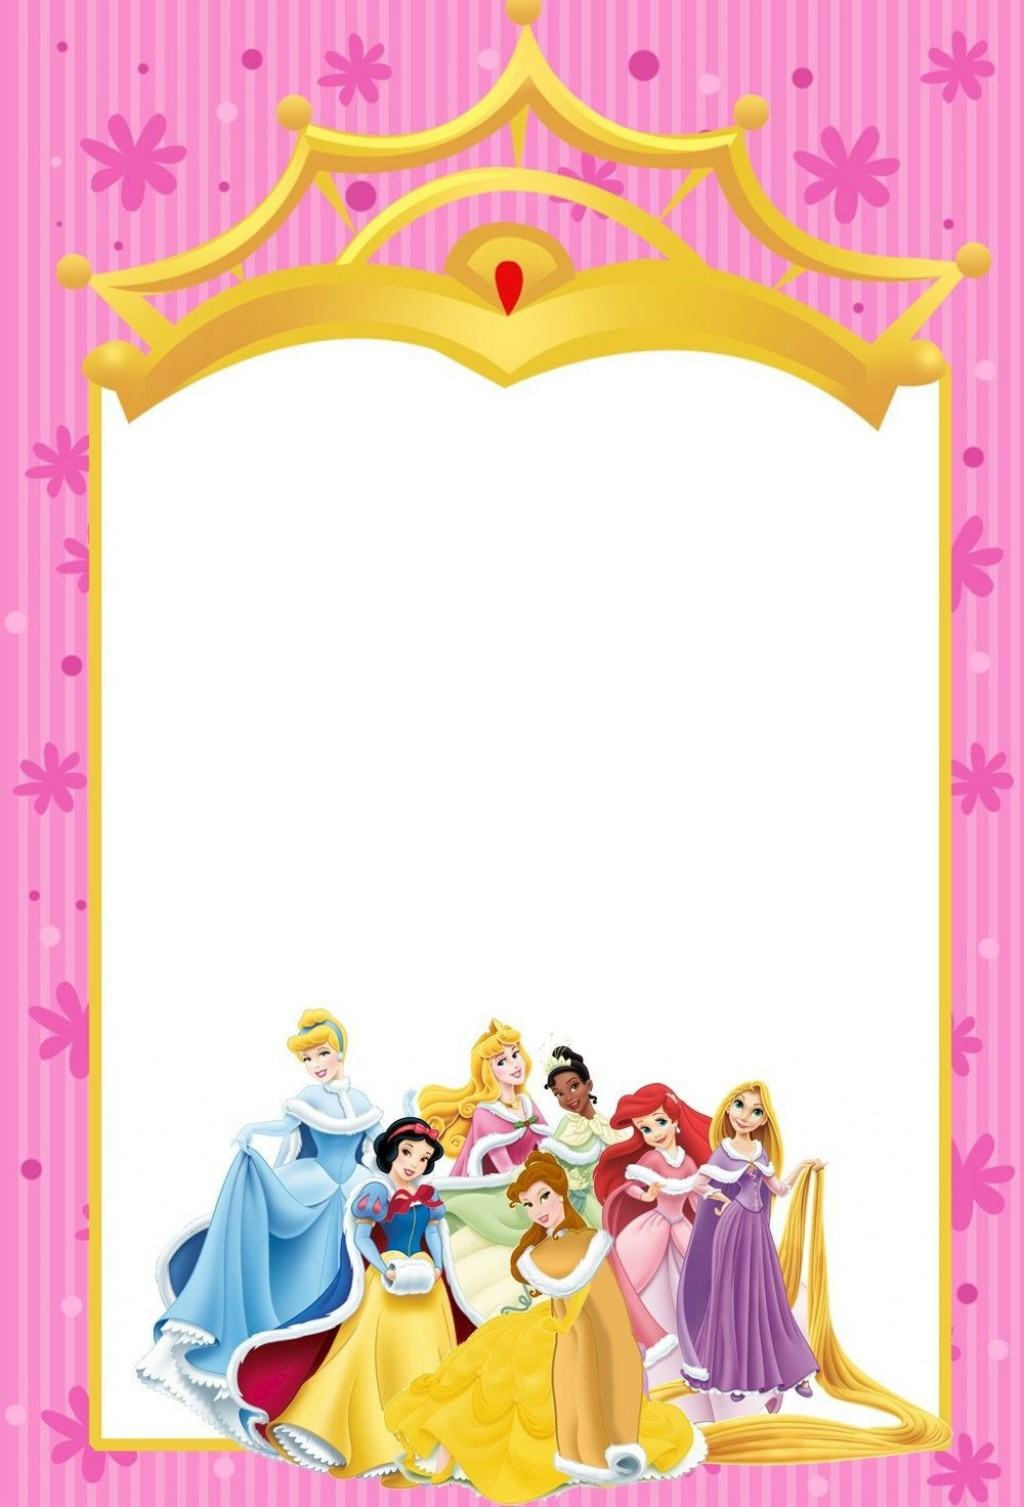 001 Fantastic Disney Princes Invitation Template Example  Downloadable Party Free Printable BirthdayLarge